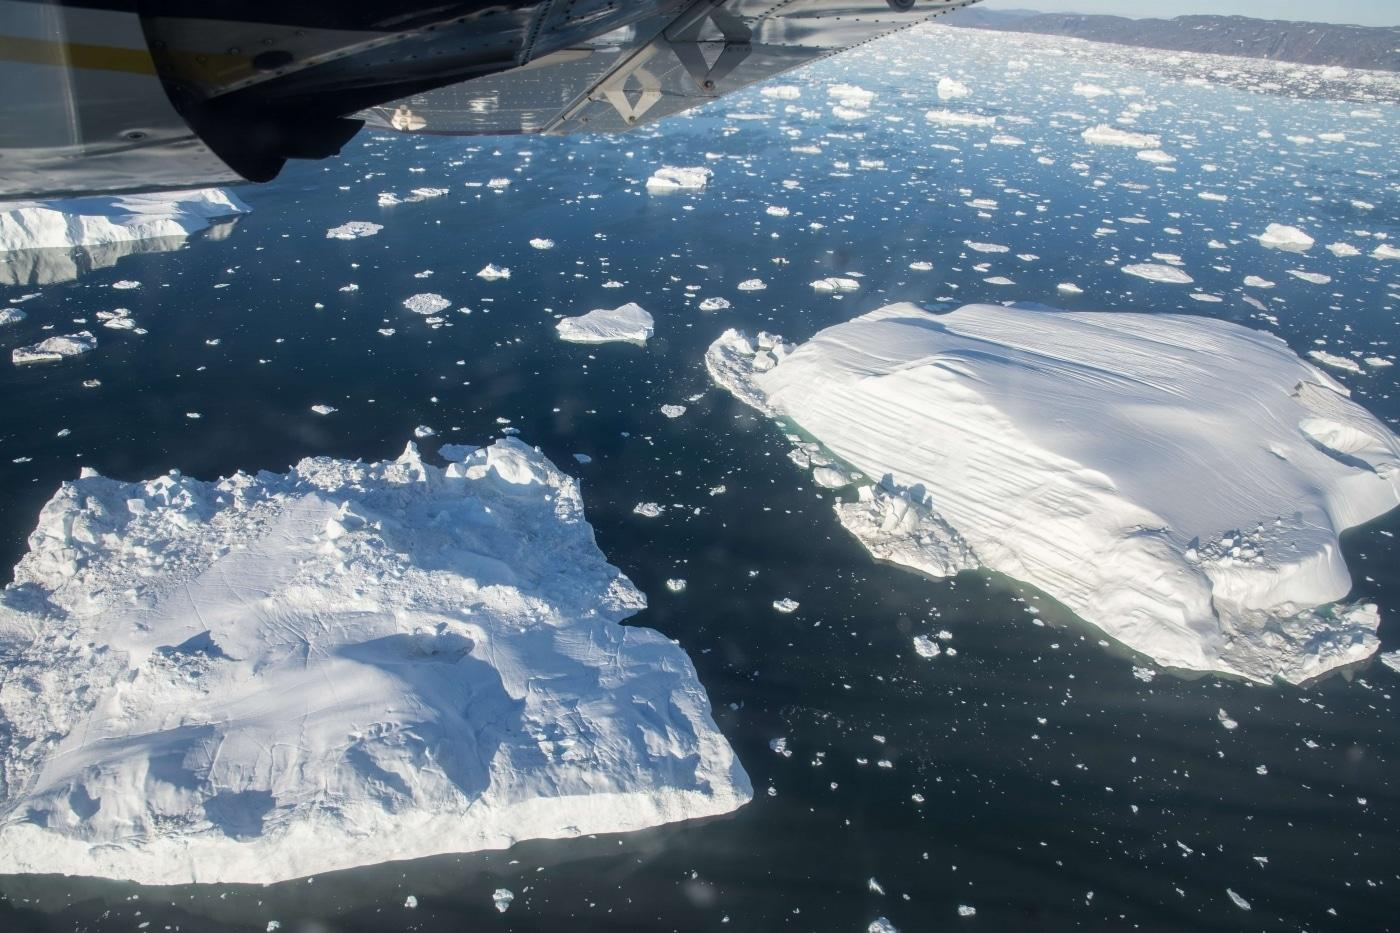 View from flight looking down at icebergs in the arctic ocean. Photo by Guide to Greenland